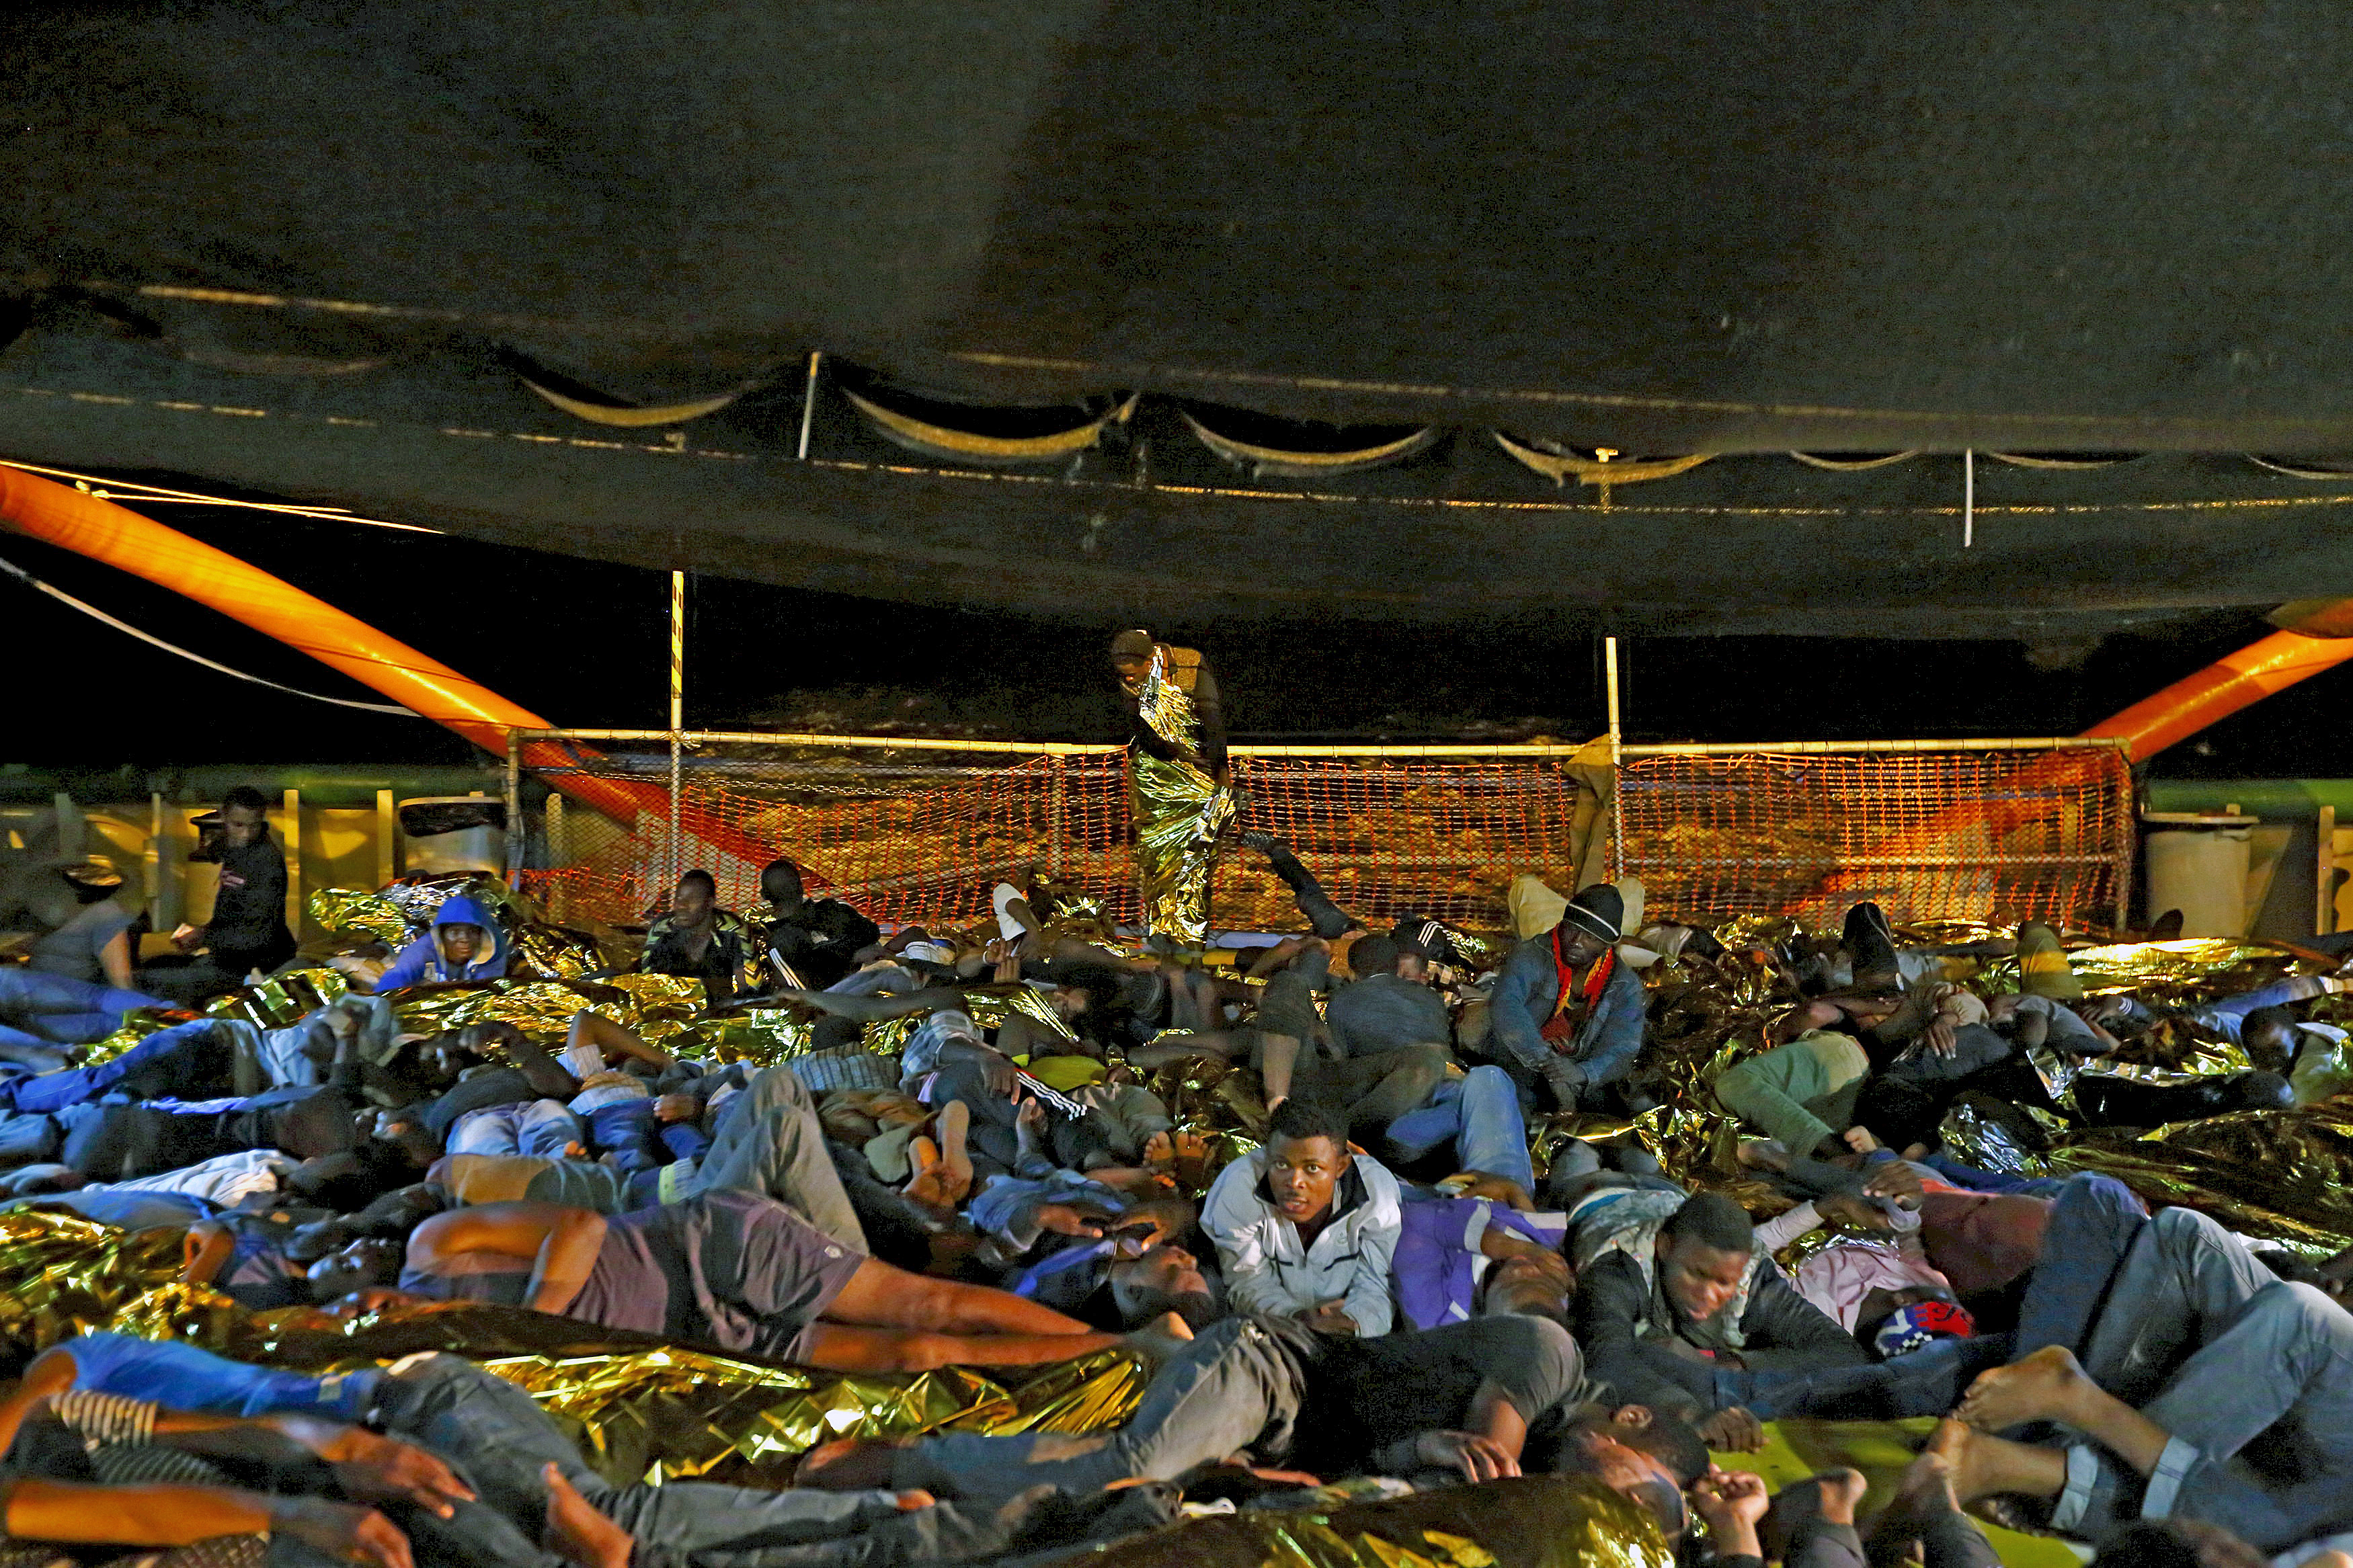 Migrants prepare for a night's sleep on the deck of the Medecins sans Frontieres (MSF) ship Bourbon Argos off the coast of Libya, August 7, 2015.